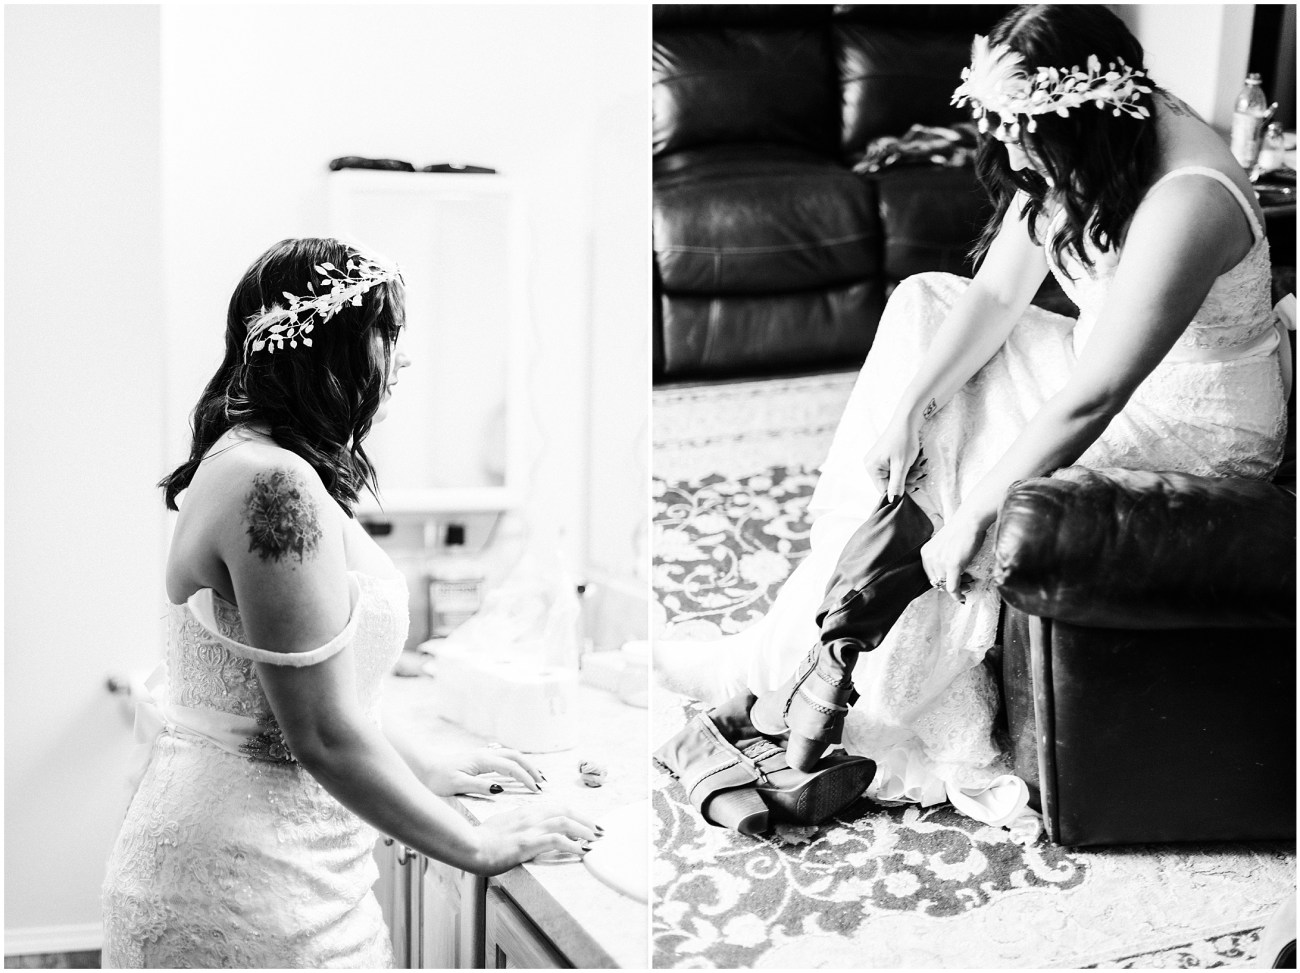 Black and White Diptych of a bride getting ready